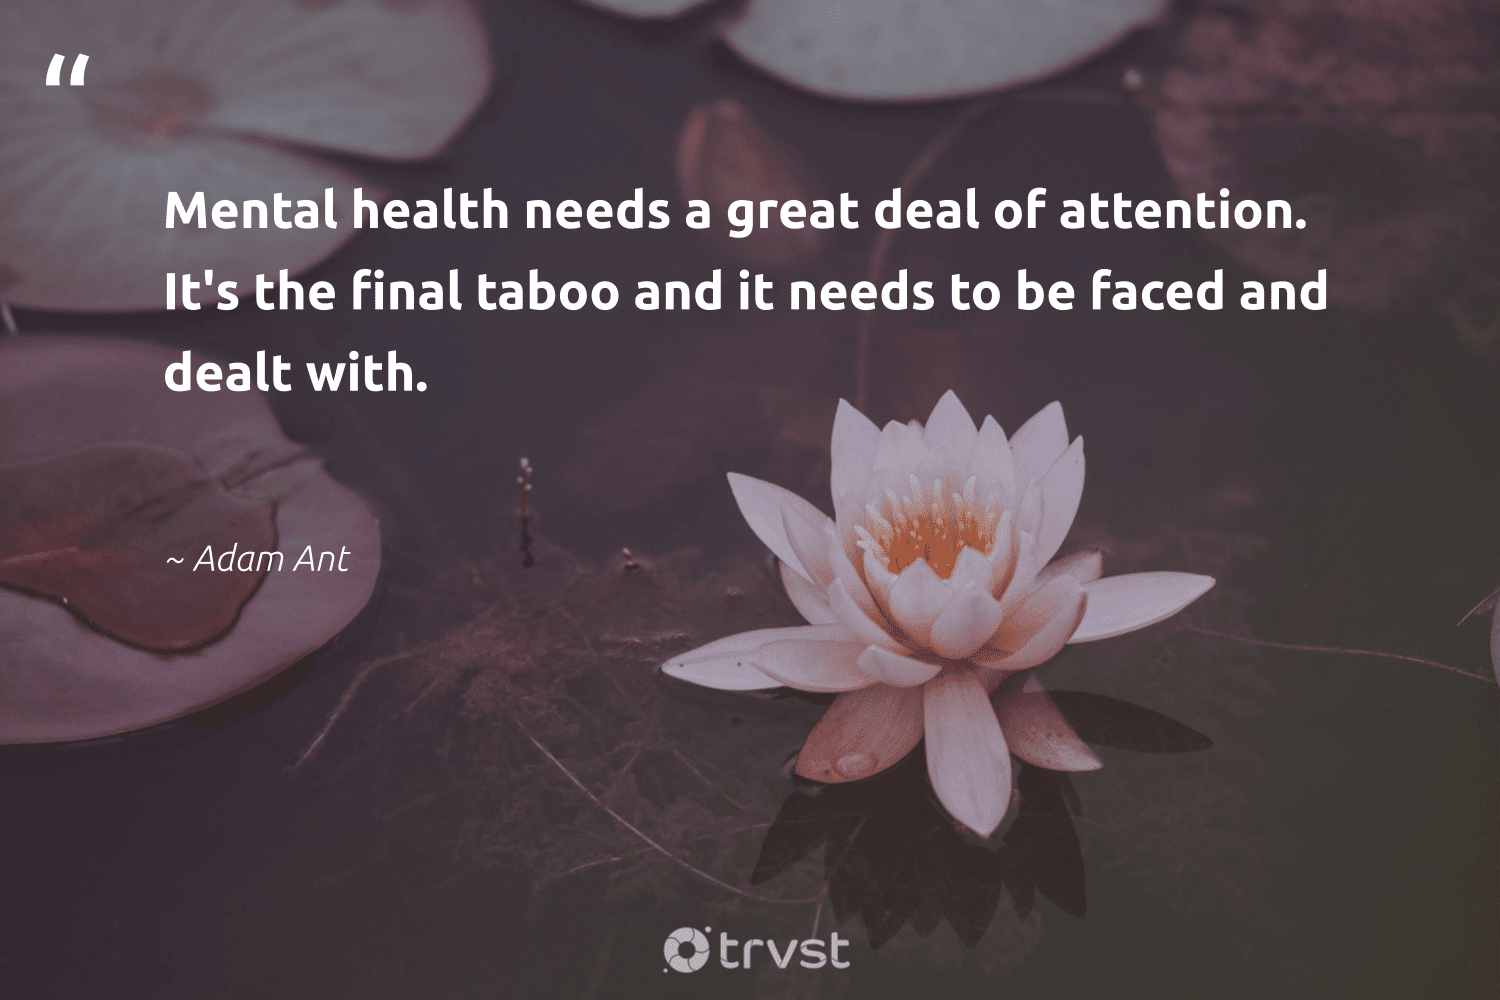 """""""Mental health needs a great deal of attention. It's the final taboo and it needs to be faced and dealt with.""""  - Adam Ant #trvst #quotes #mentalhealth #health #depression #changemakers #nevergiveup #beinspired #stampoutthestigma #togetherwecan #mindset #bethechange"""